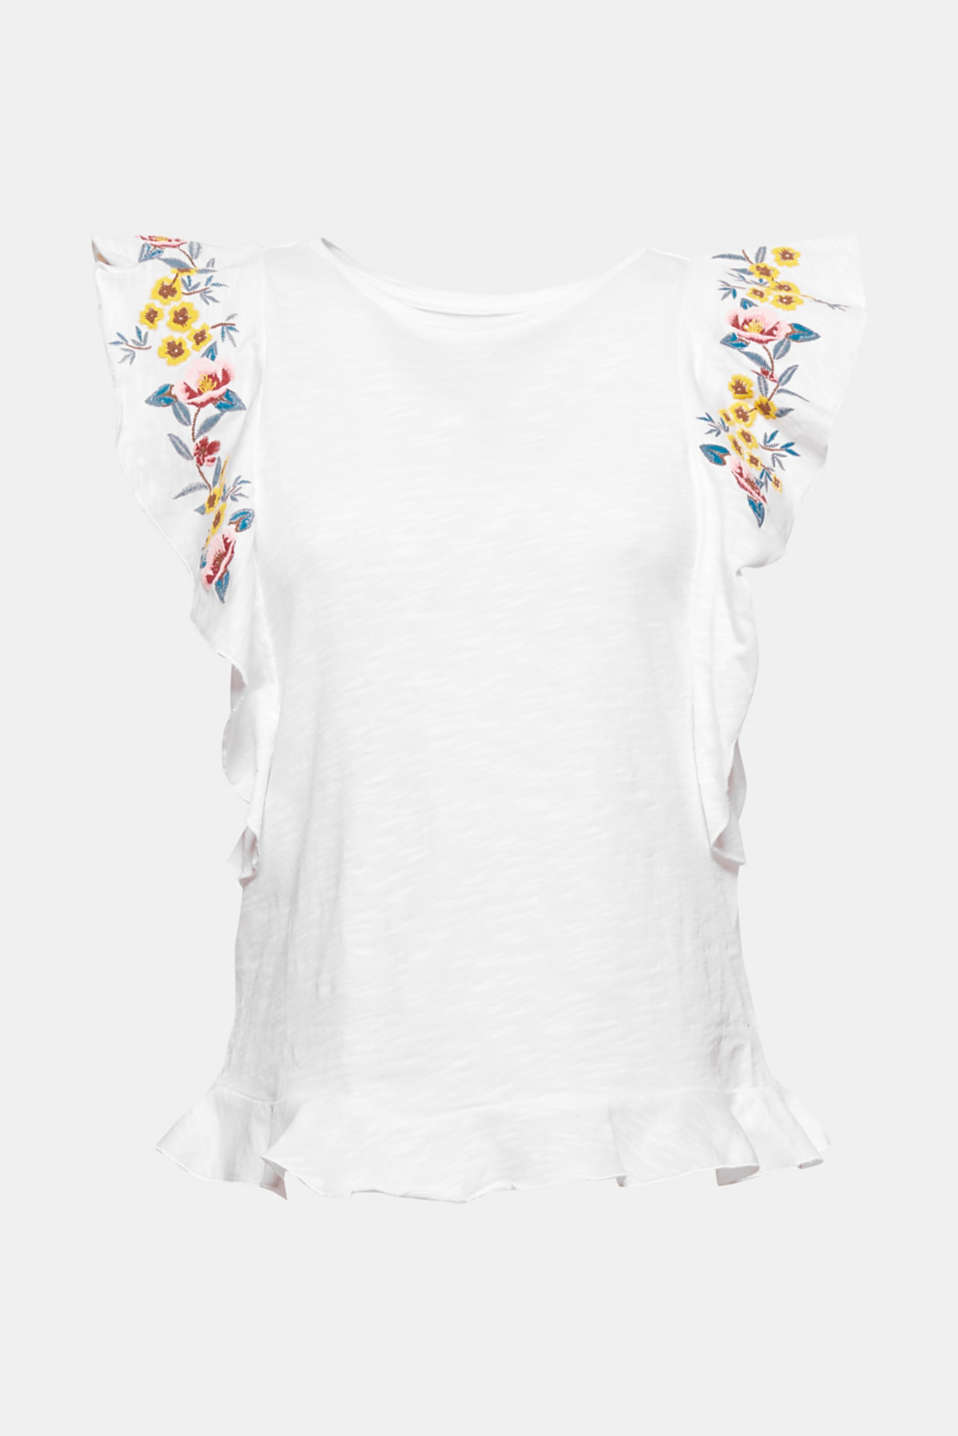 Ready for summer: this slub, pure cotton T-shirt has a feminine fell thanks to the flounces and floral embroidery.